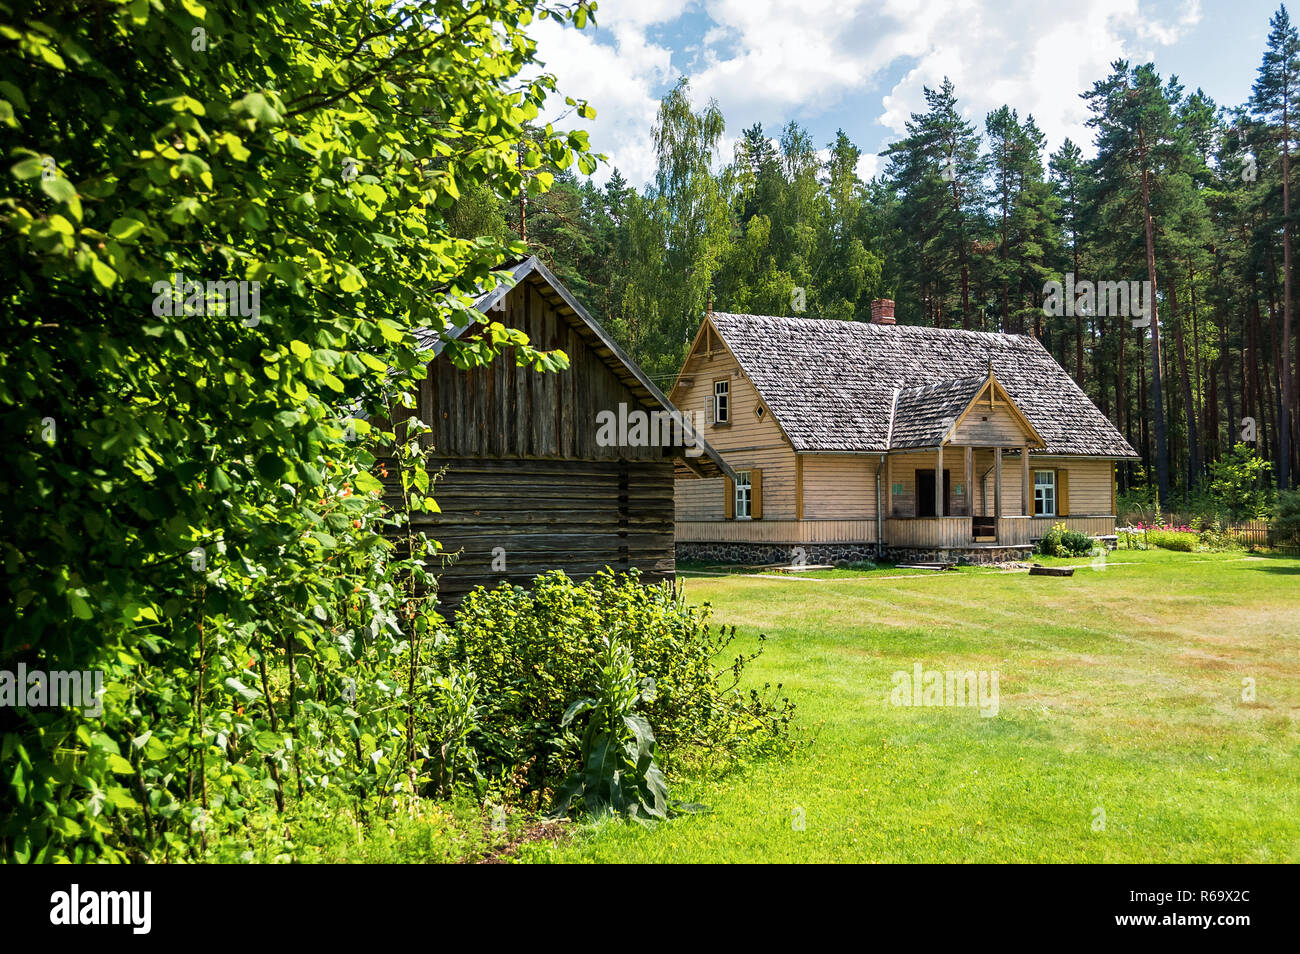 The Ethnographic Open-Air Museum of Latvia Stock Photo